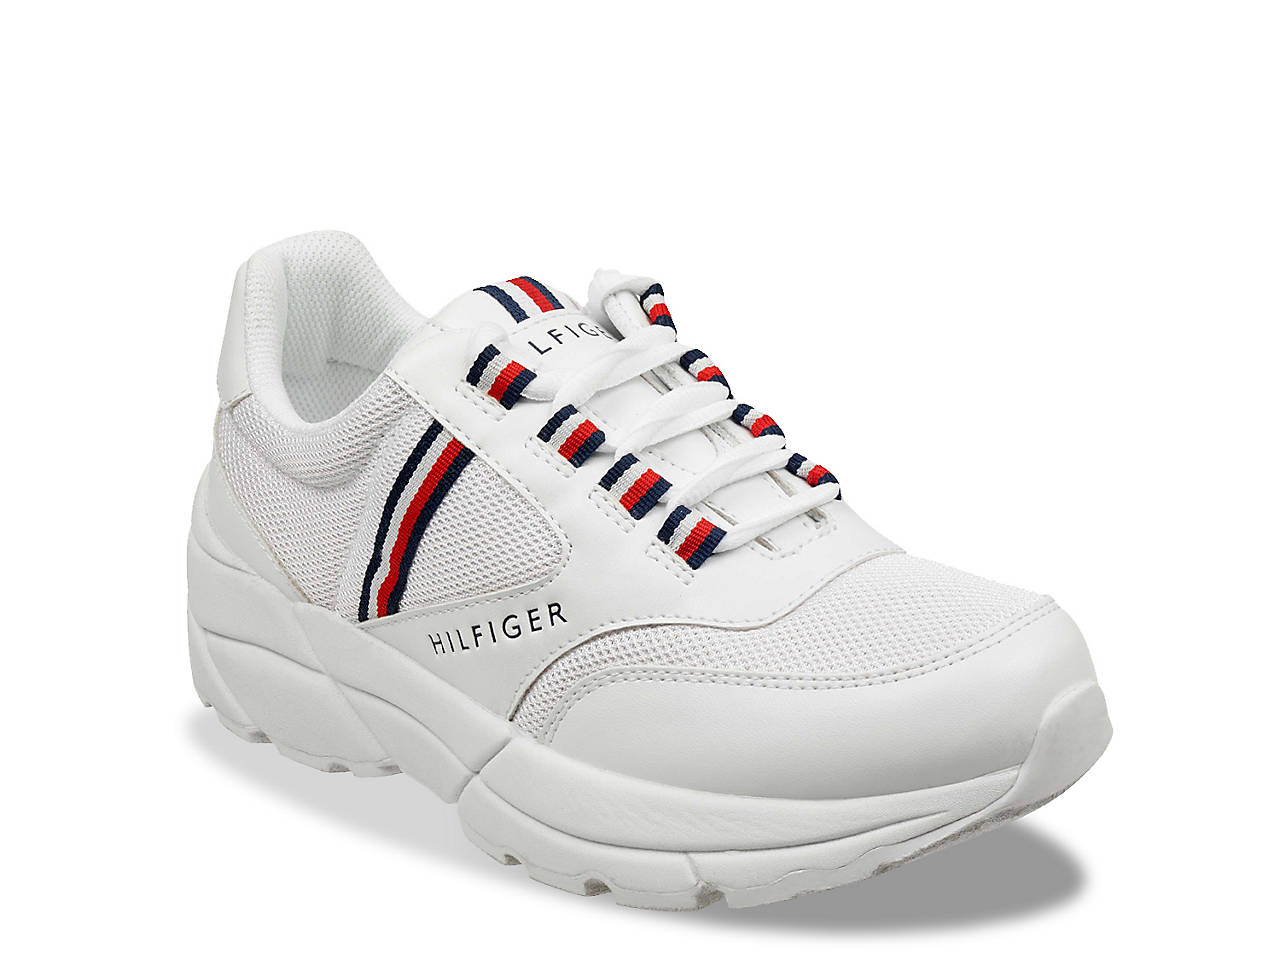 1bdfca799 Tommy Hilfiger Ernie Sneaker Women s Shoes